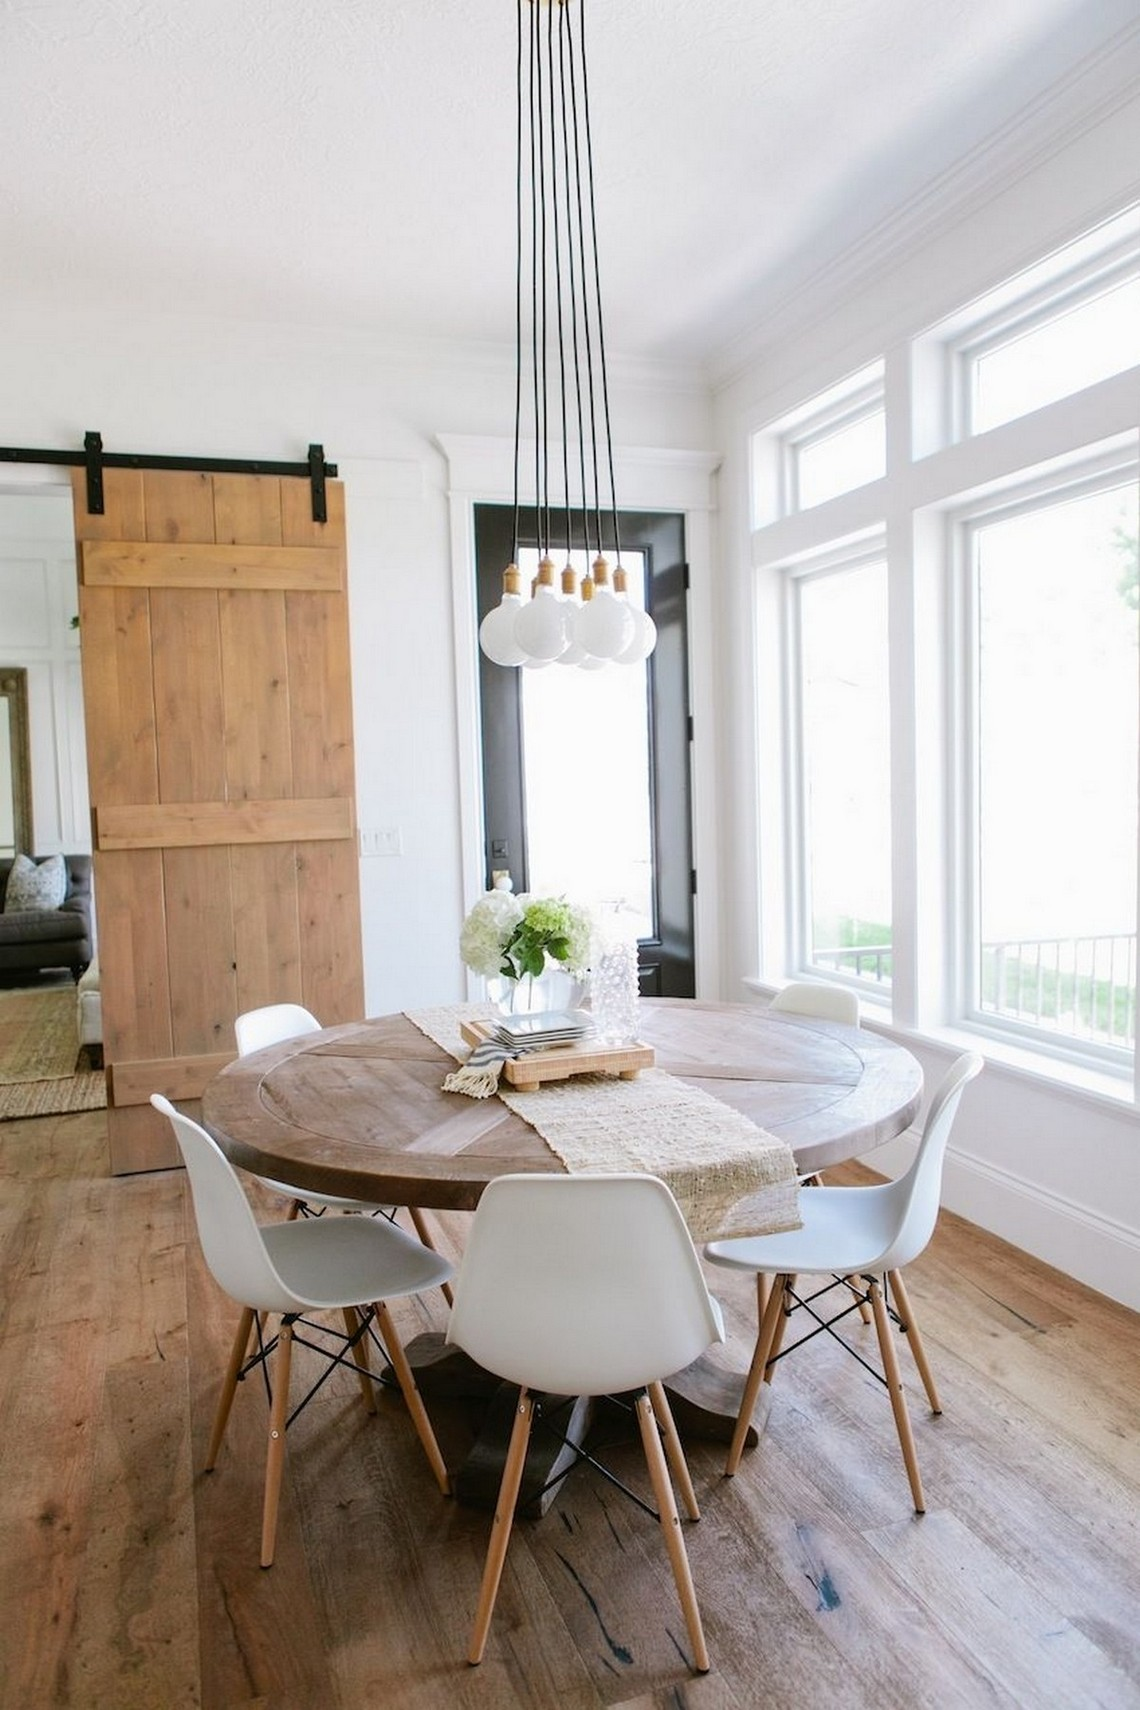 Modern Dining Room Inspirations To Look Out For In 2019 modern dining room Modern Dining Room Inspirations To Look Out For In 2019 2 1